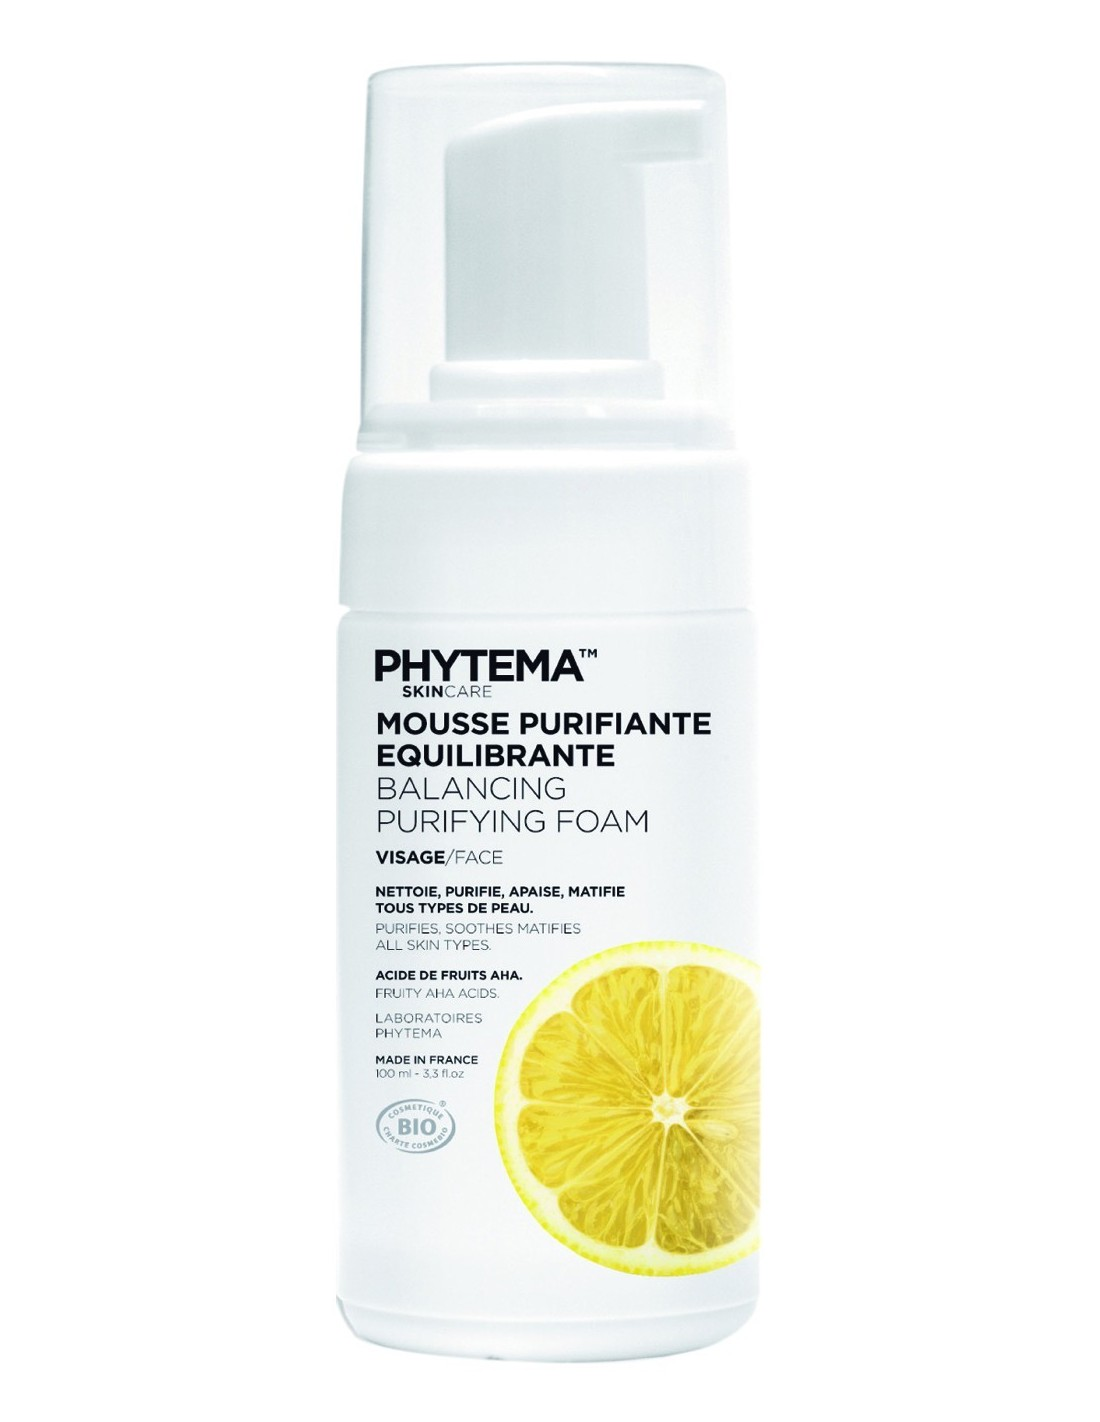 Phytema-mousse-purifiante-equilibrante-bio